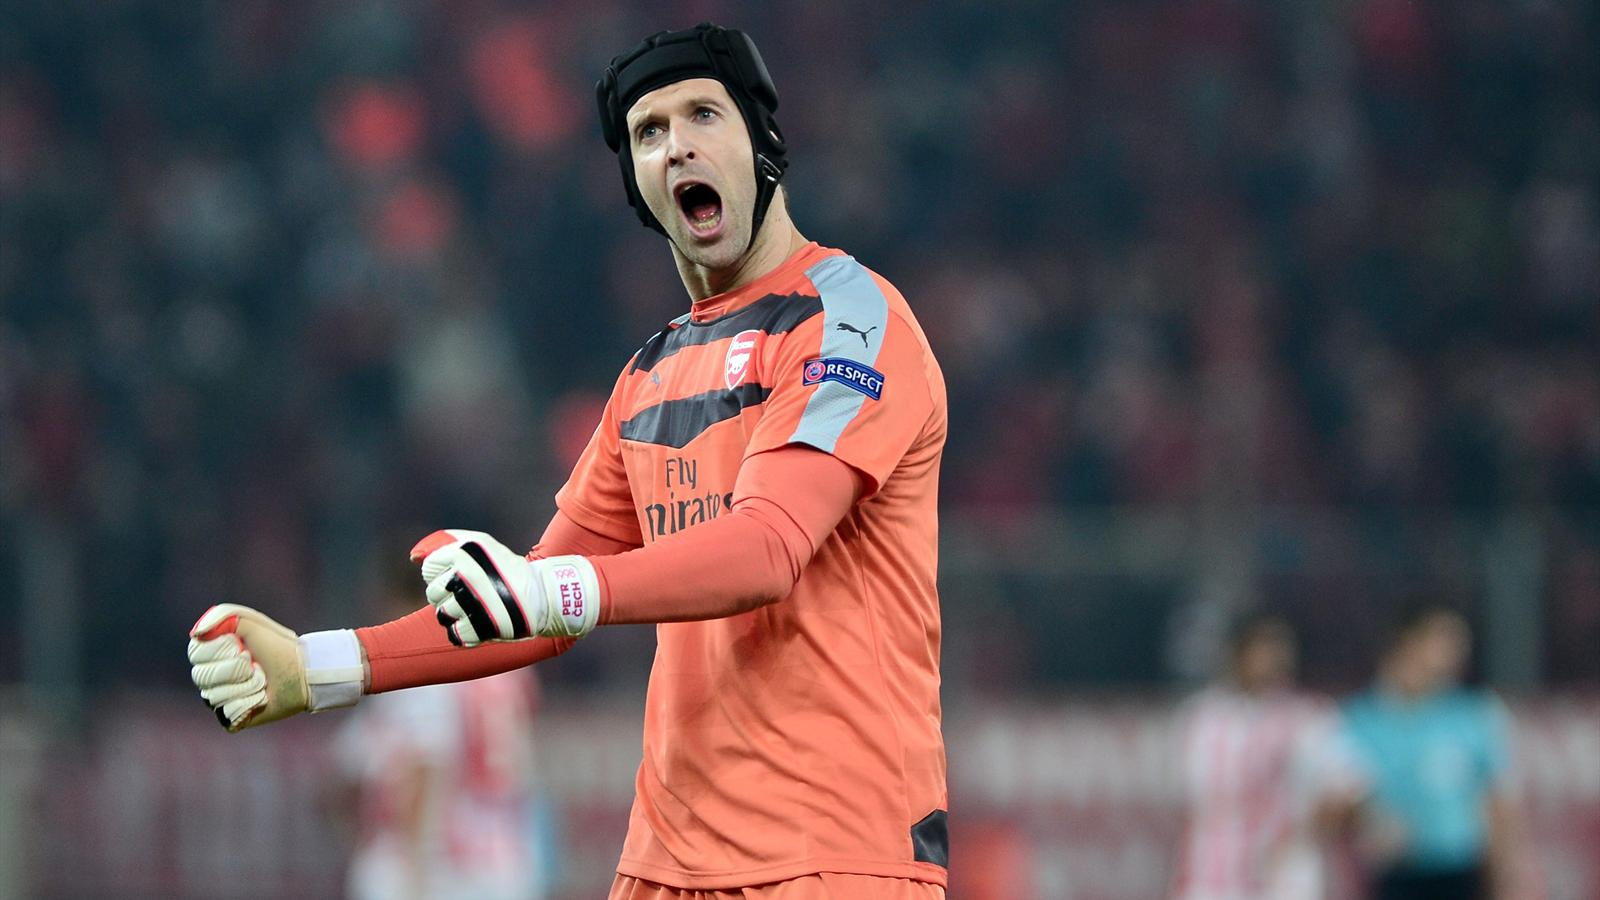 Arsenal's Czech goalkeeper Petr Cech celebrates after the UEFA Champions League Group F football match between Olympiacos and Arsenal at the Georgios Karaiskakis Stadium in Piraeus near Athens on December 9, 2015